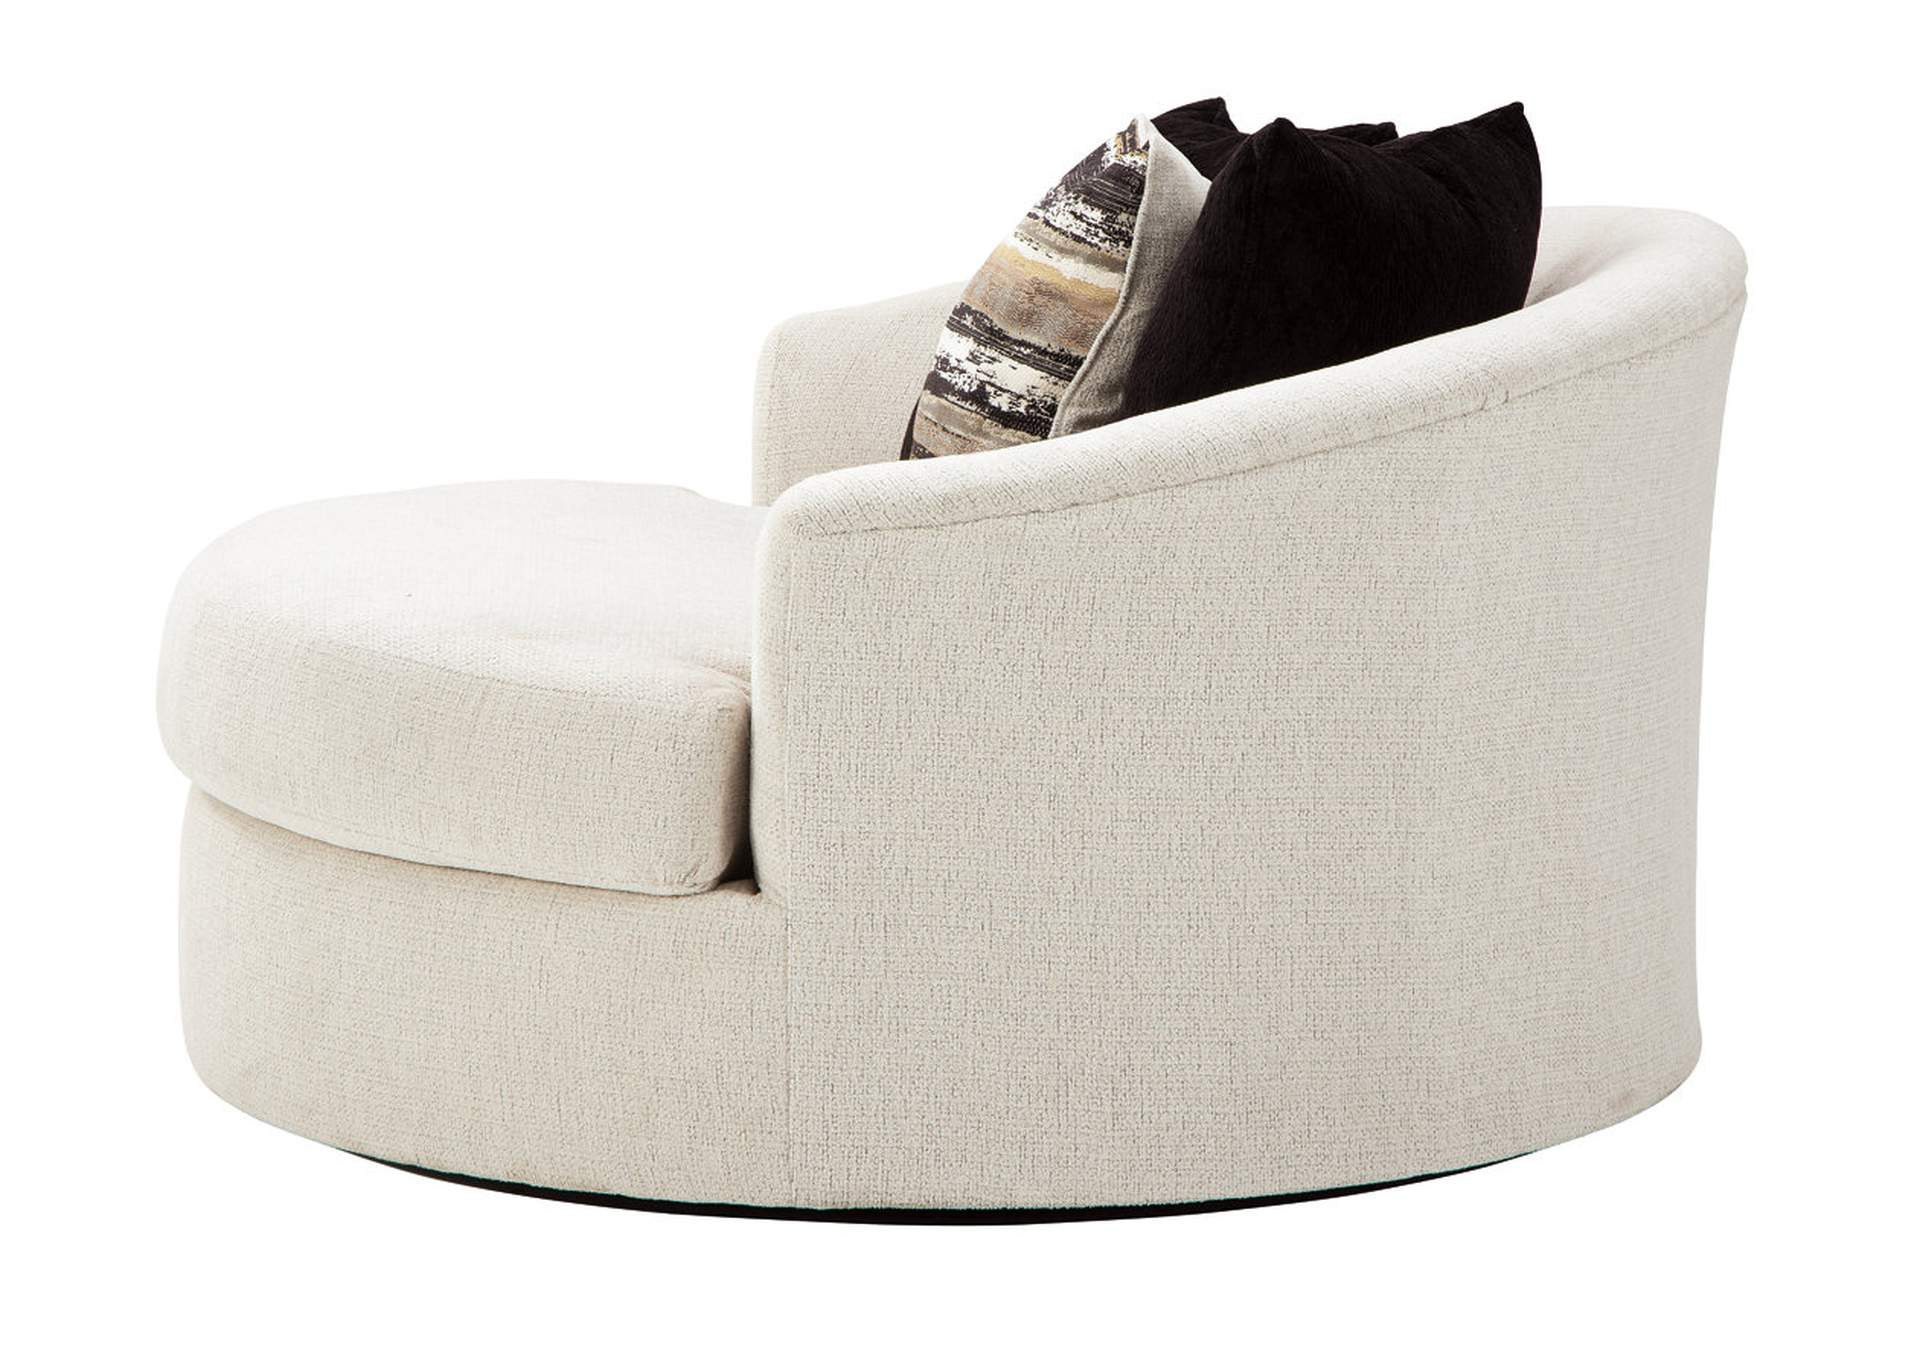 Cambri Oversized Round Swivel Chair,Ashley